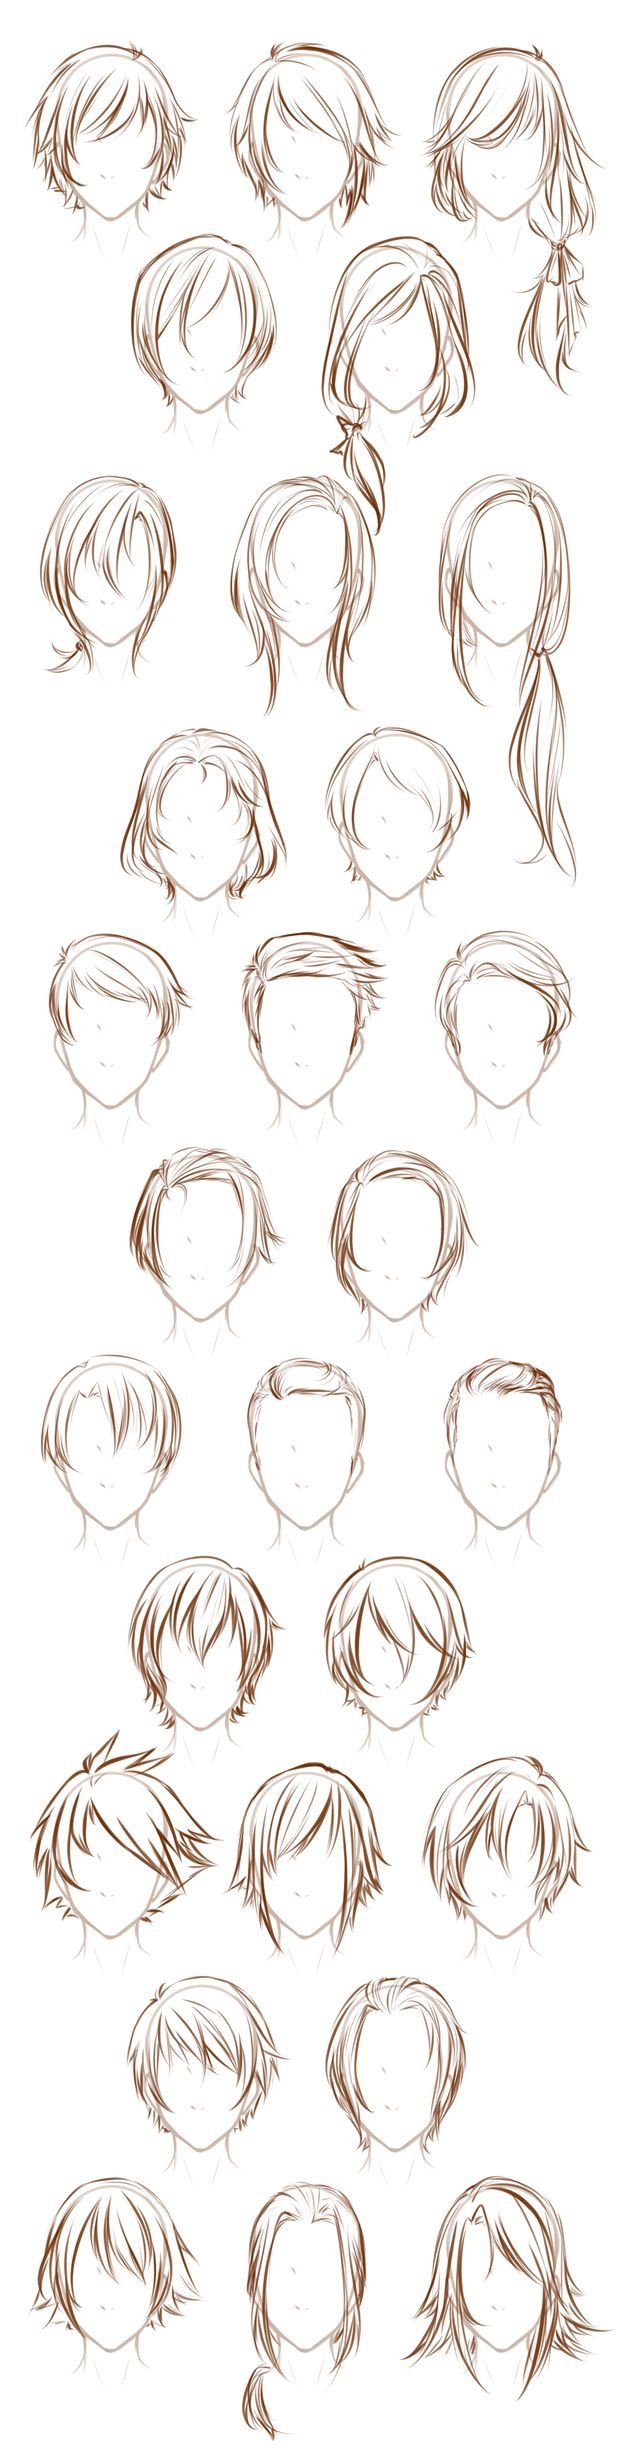 Boy hairstyle sketch different types of hairstyles for both men and women  drawing